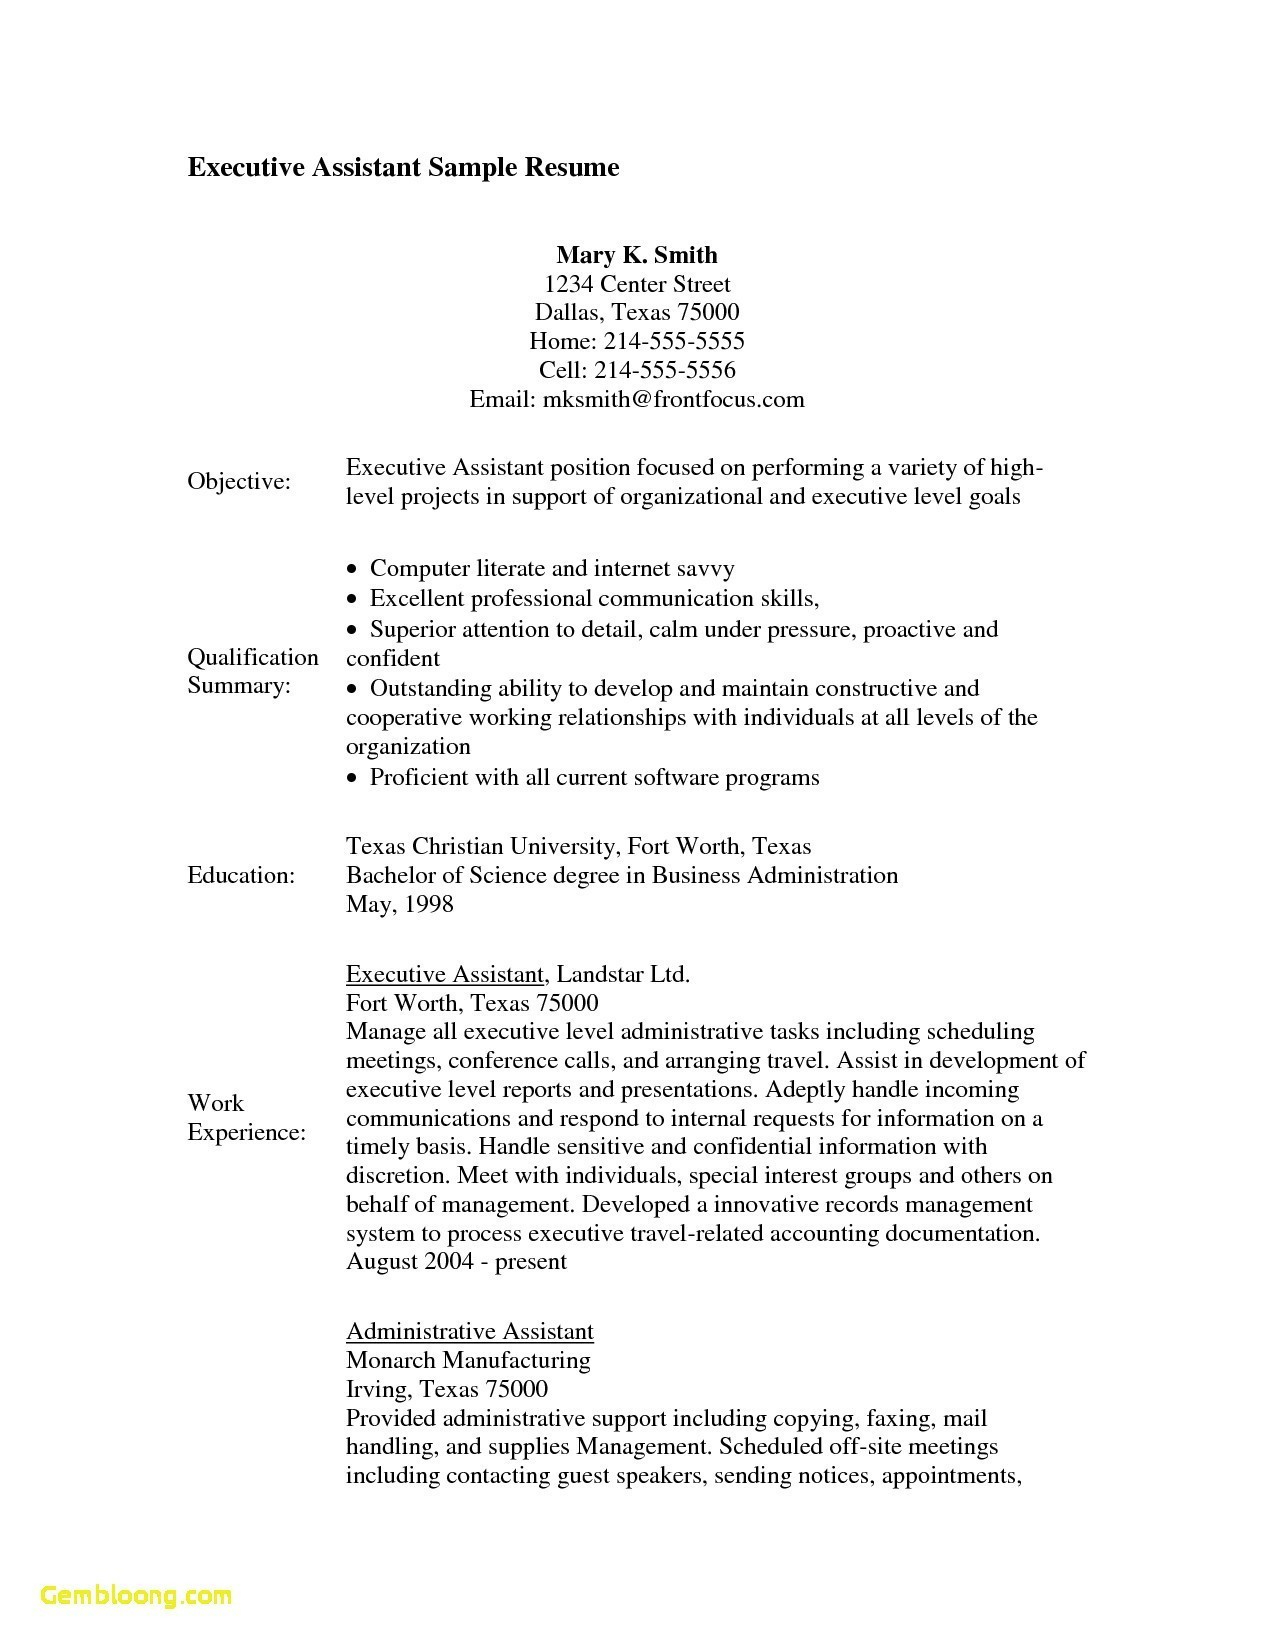 Medical Receptionist Duties for Resume - Medical assistant Resume New Inspirational Medical assistant Resumes